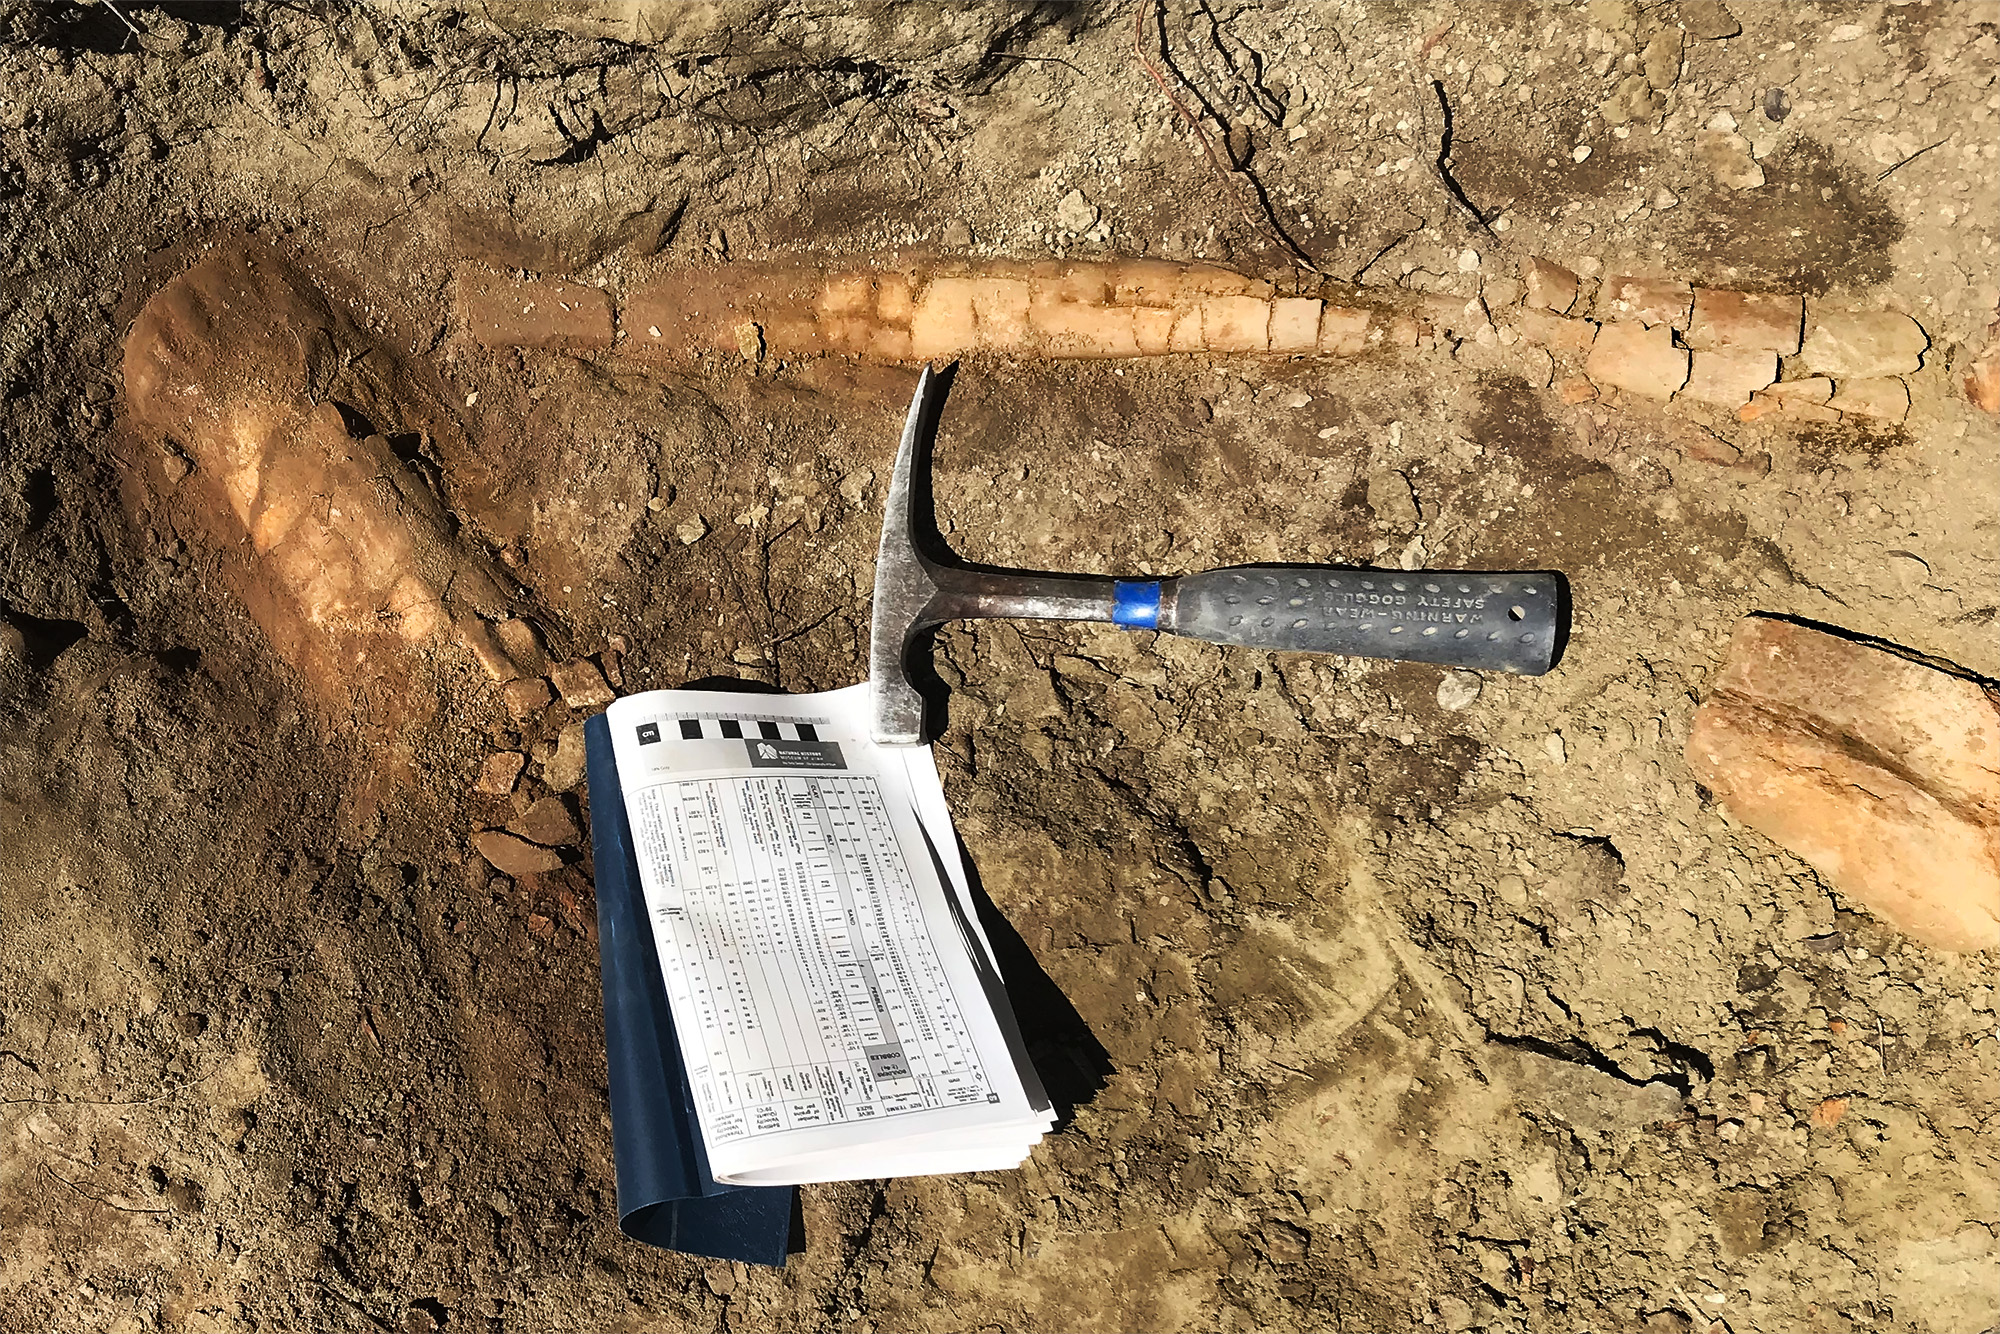 The leg bone fossils in the dirt.